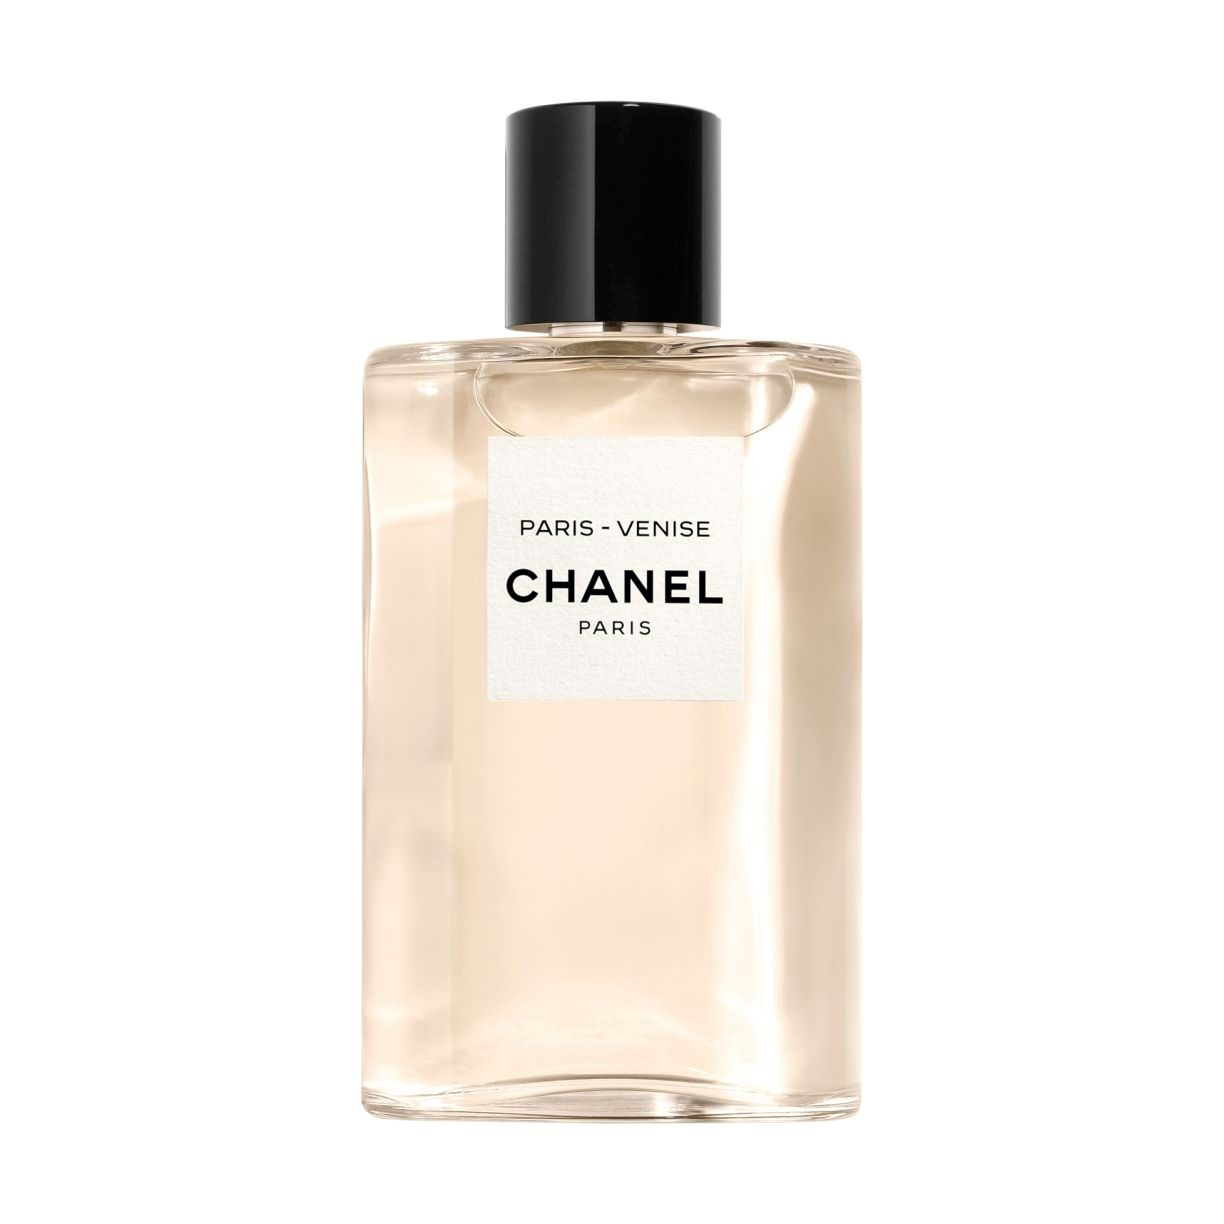 LES EAUX DE CHANEL PARIS - VENISE - EAU DE TOILETTE SPRAY